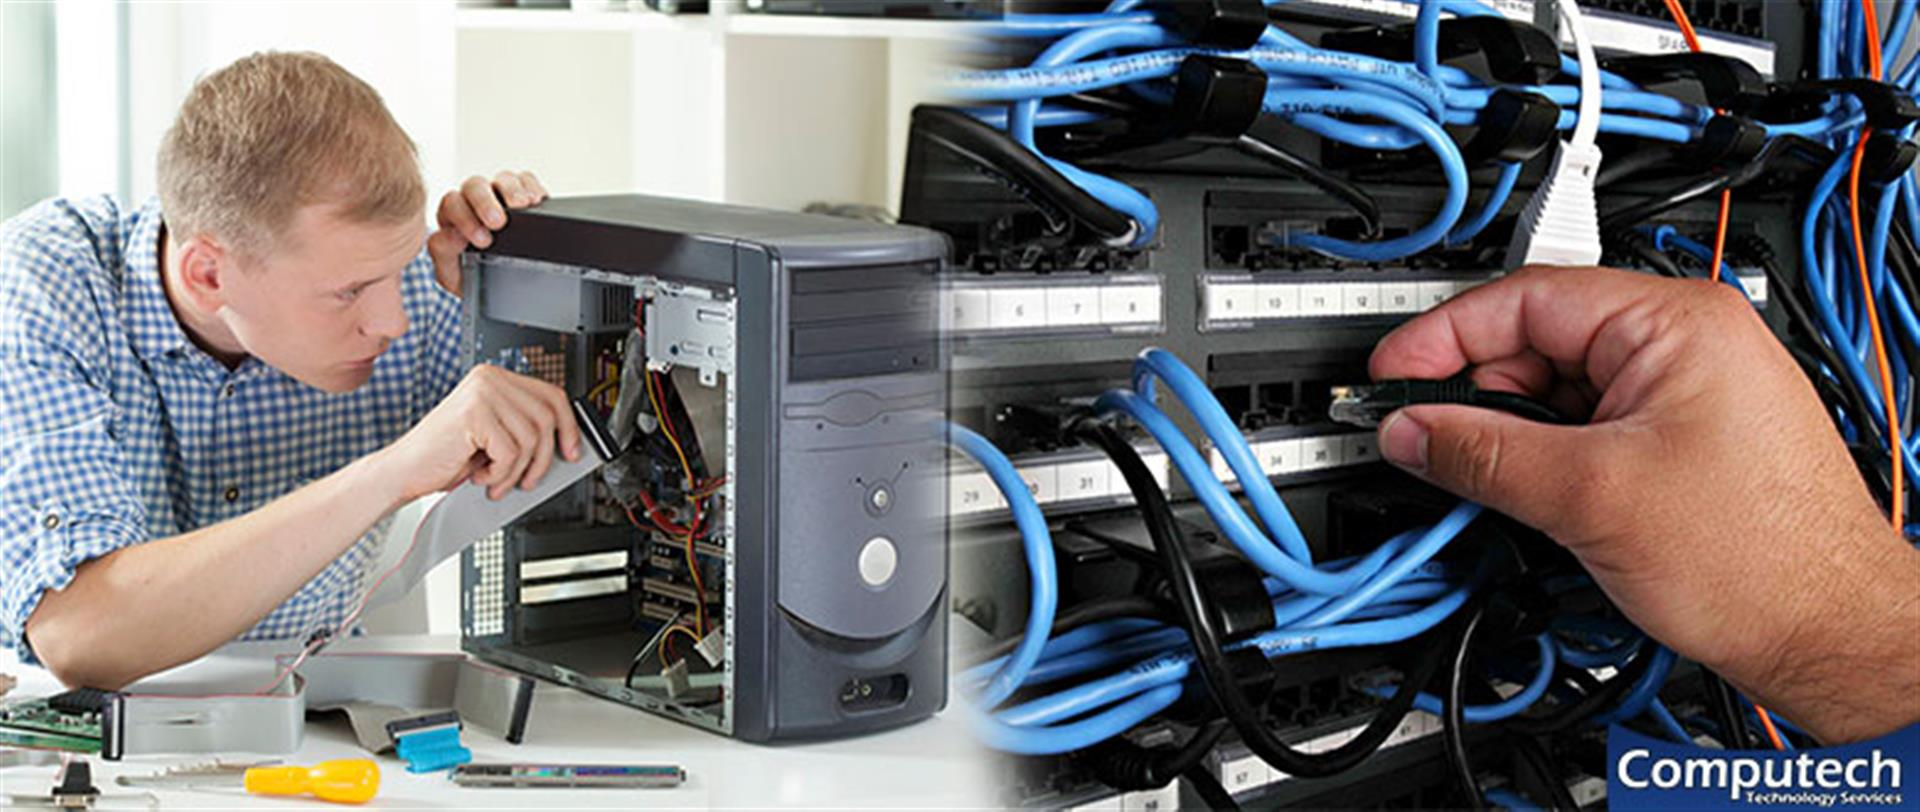 Centre Alabama Onsite Computer & Printer Repairs, Networks, Voice & Data Low Voltage Cabling Services